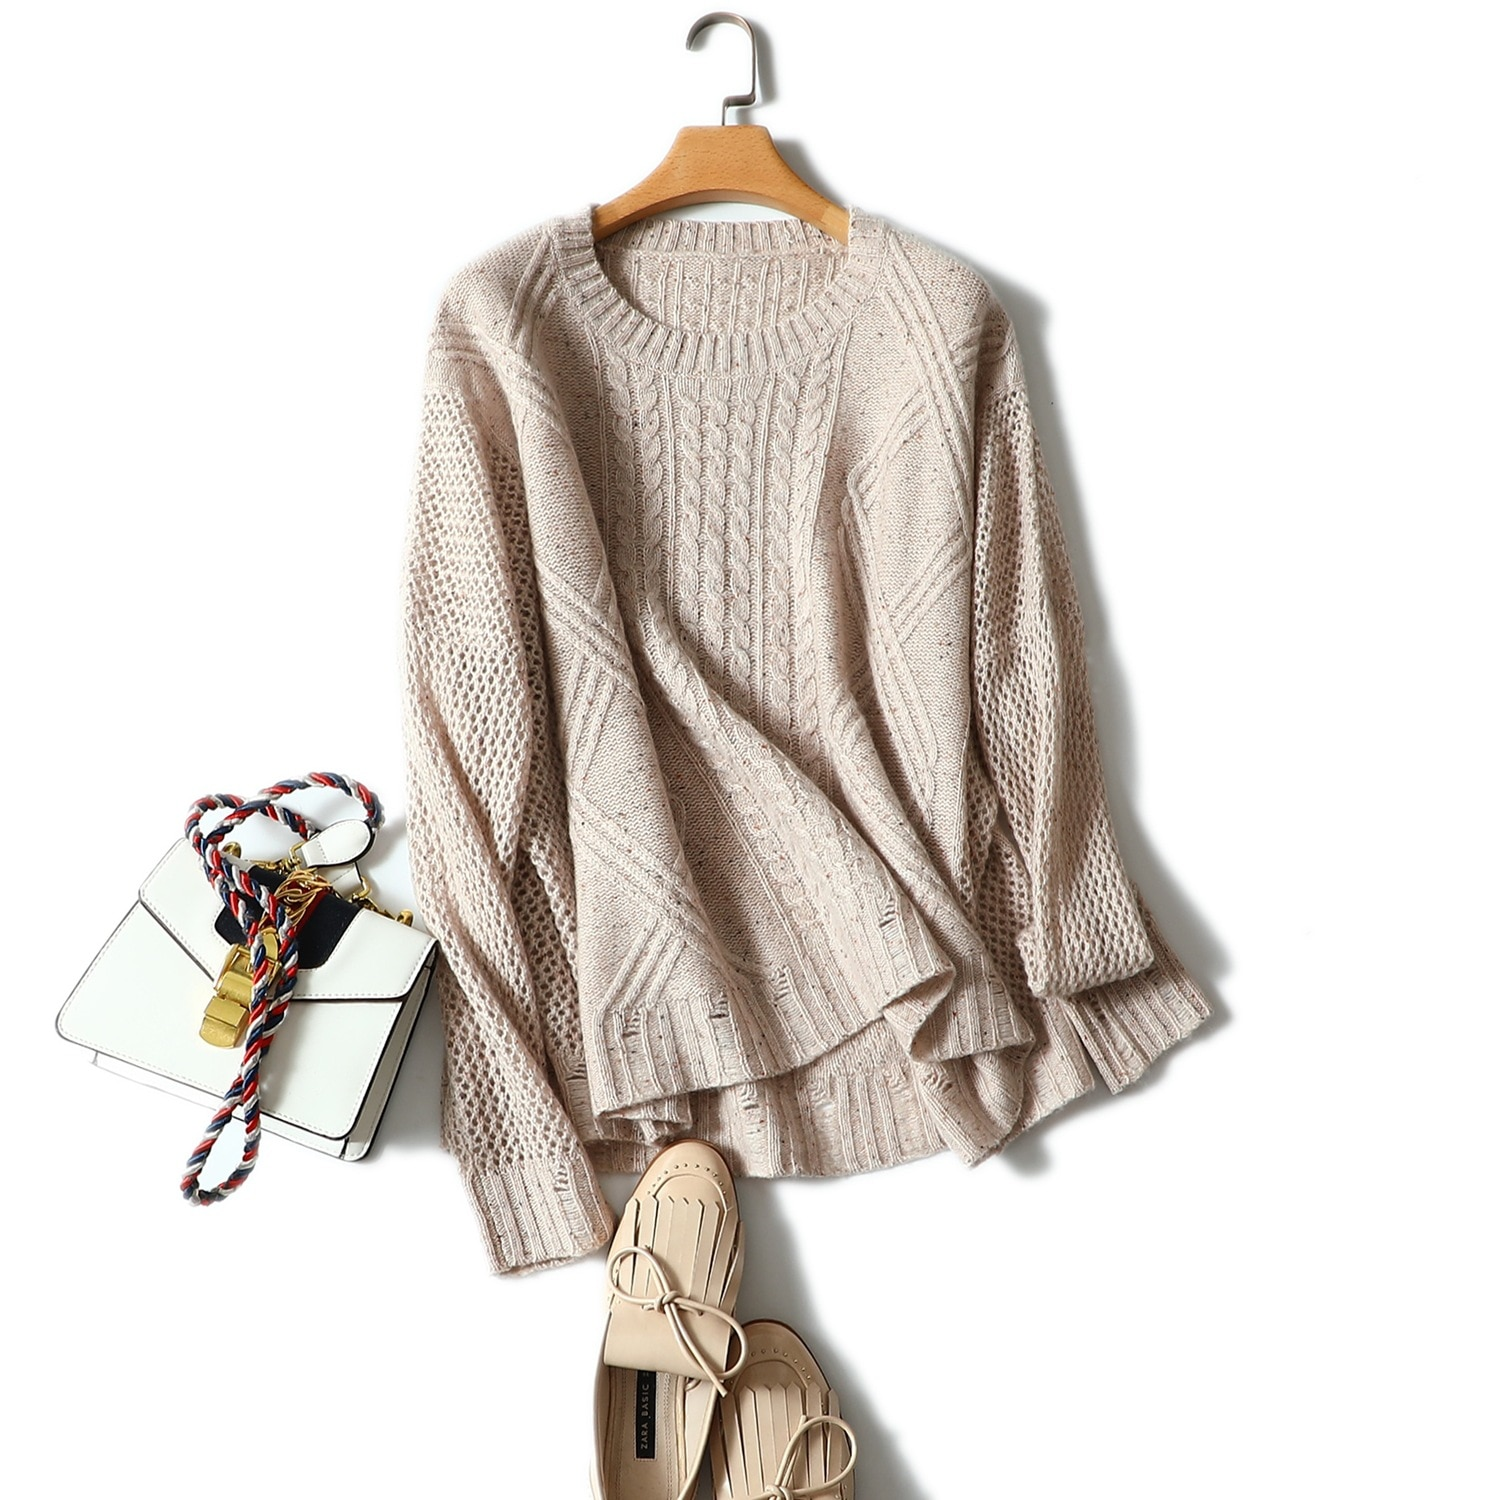 Shuchan 30% Cashmere 70% Wool Autumn Winter Knitwear Pullover Female Sweaters Hollow Out Loose Korean Women Sweater Knitting enlarge